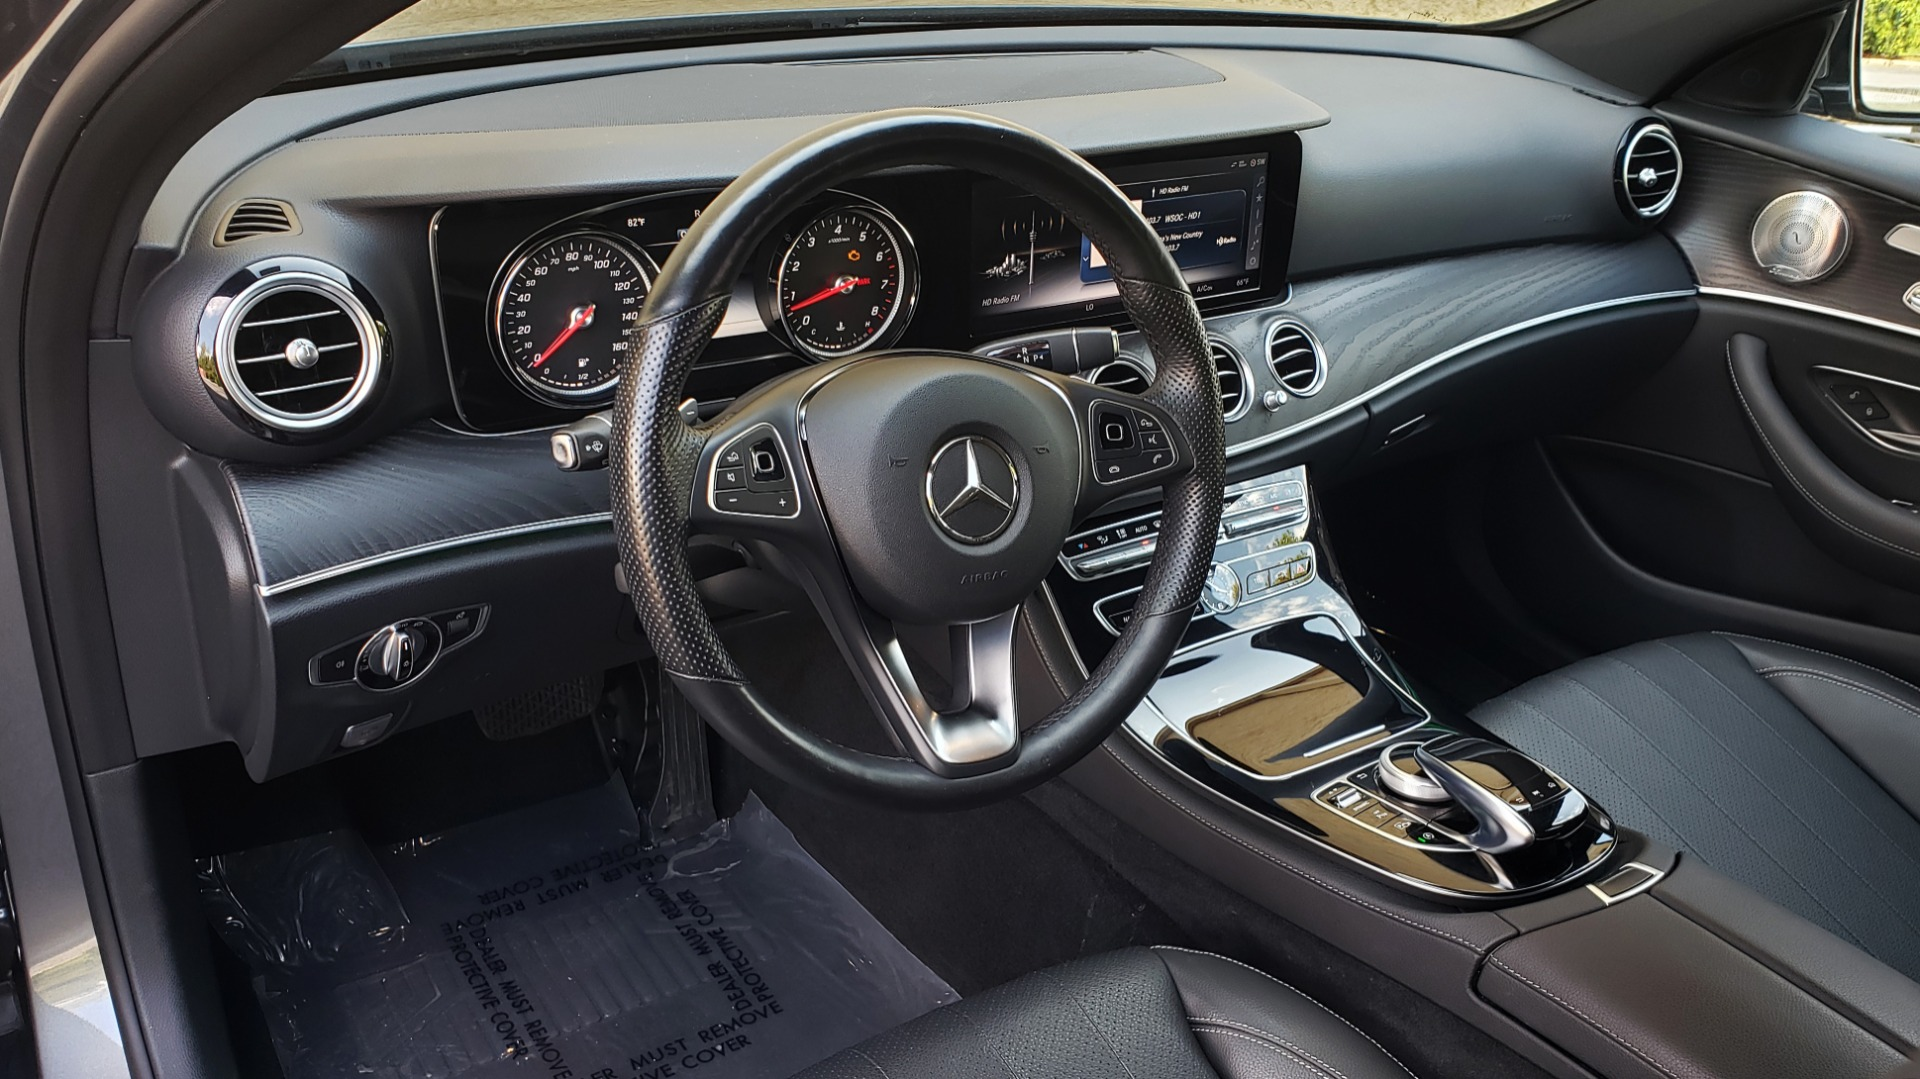 Used 2017 Mercedes-Benz E-CLASS E 300 SPORT / NAV / SUNROOF / HTD STS / BURMESTER / REARVIEW for sale Sold at Formula Imports in Charlotte NC 28227 38